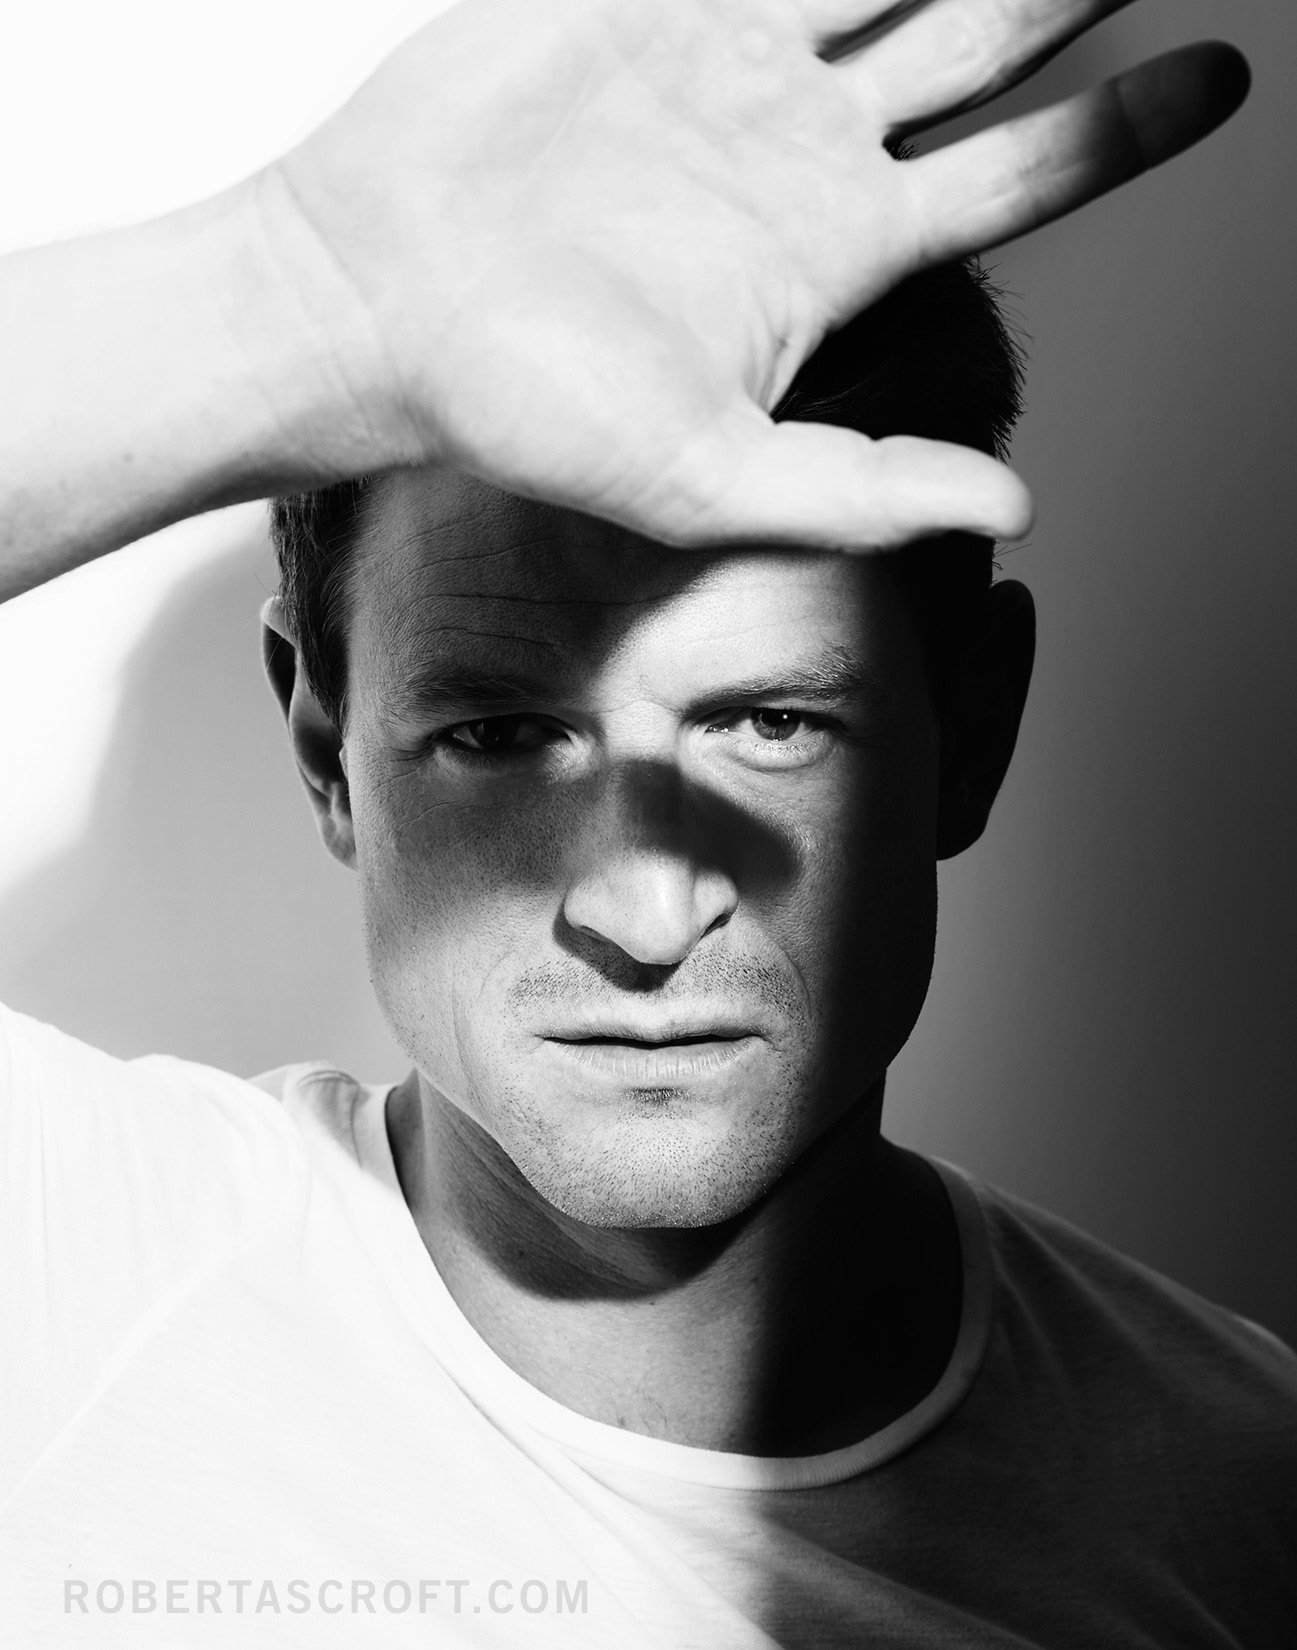 PHILIP-WINCHESTER-by-Robert-Ascroft